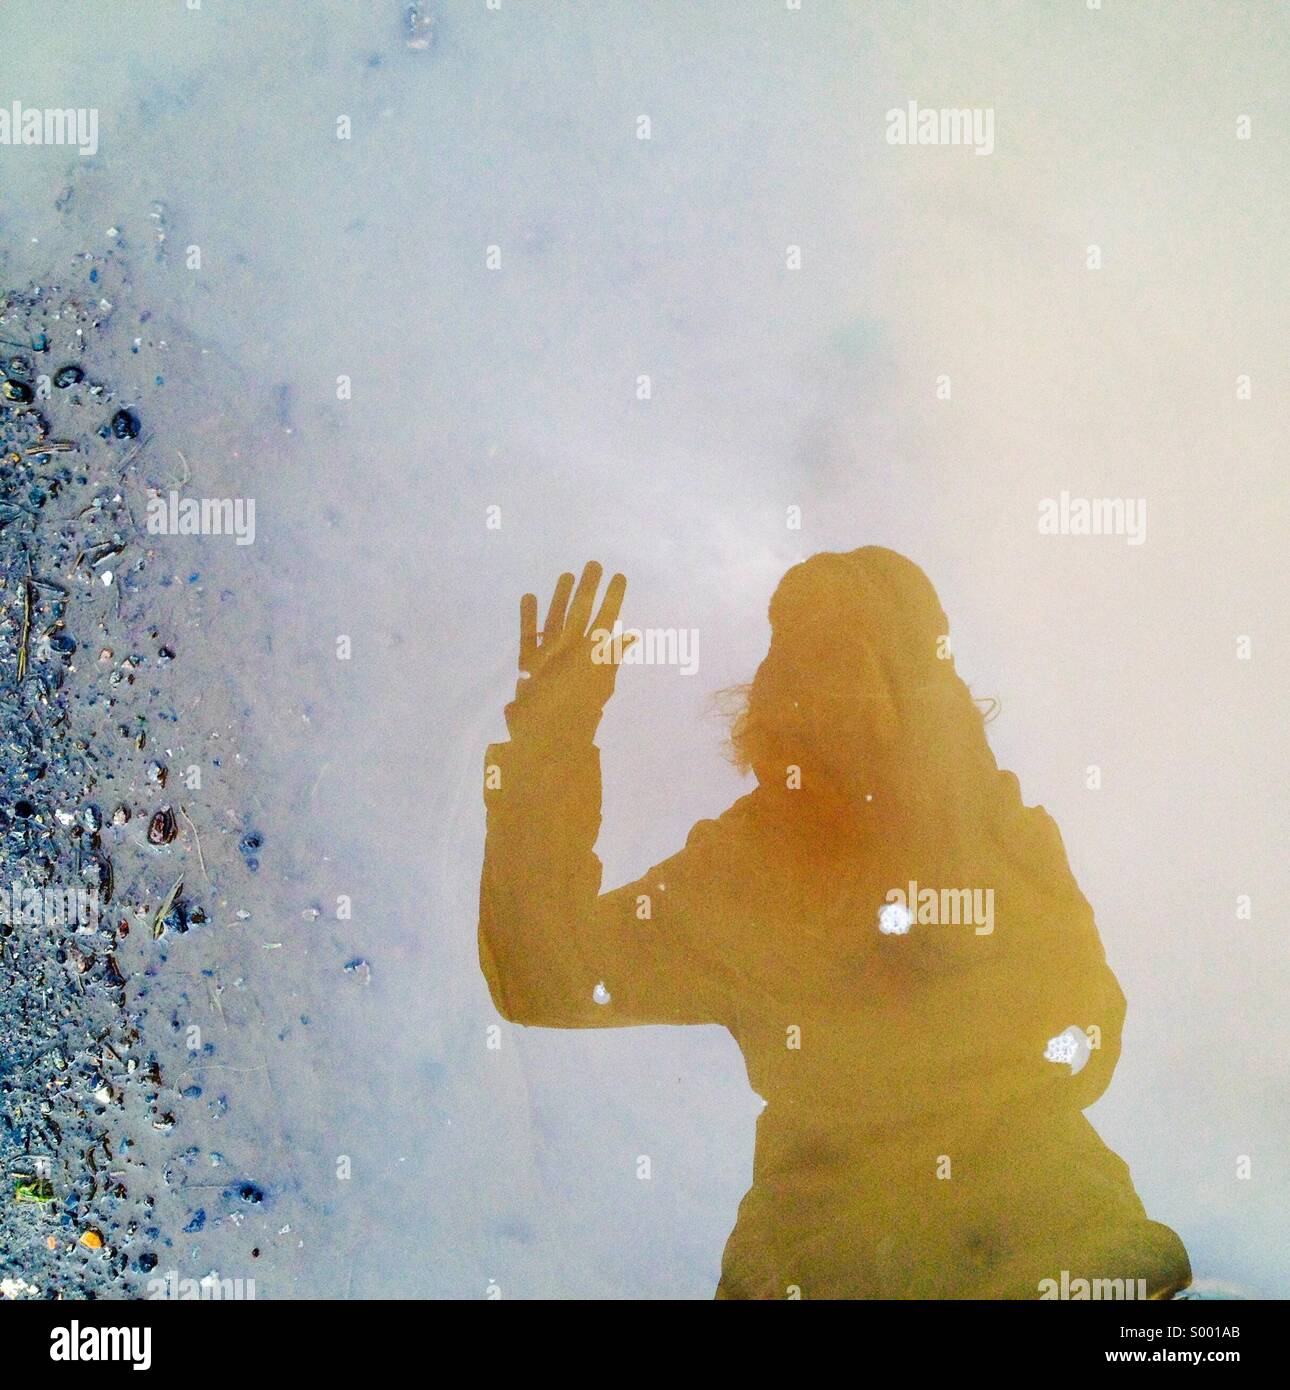 Waving, reflection of person in puddle - Stock Image